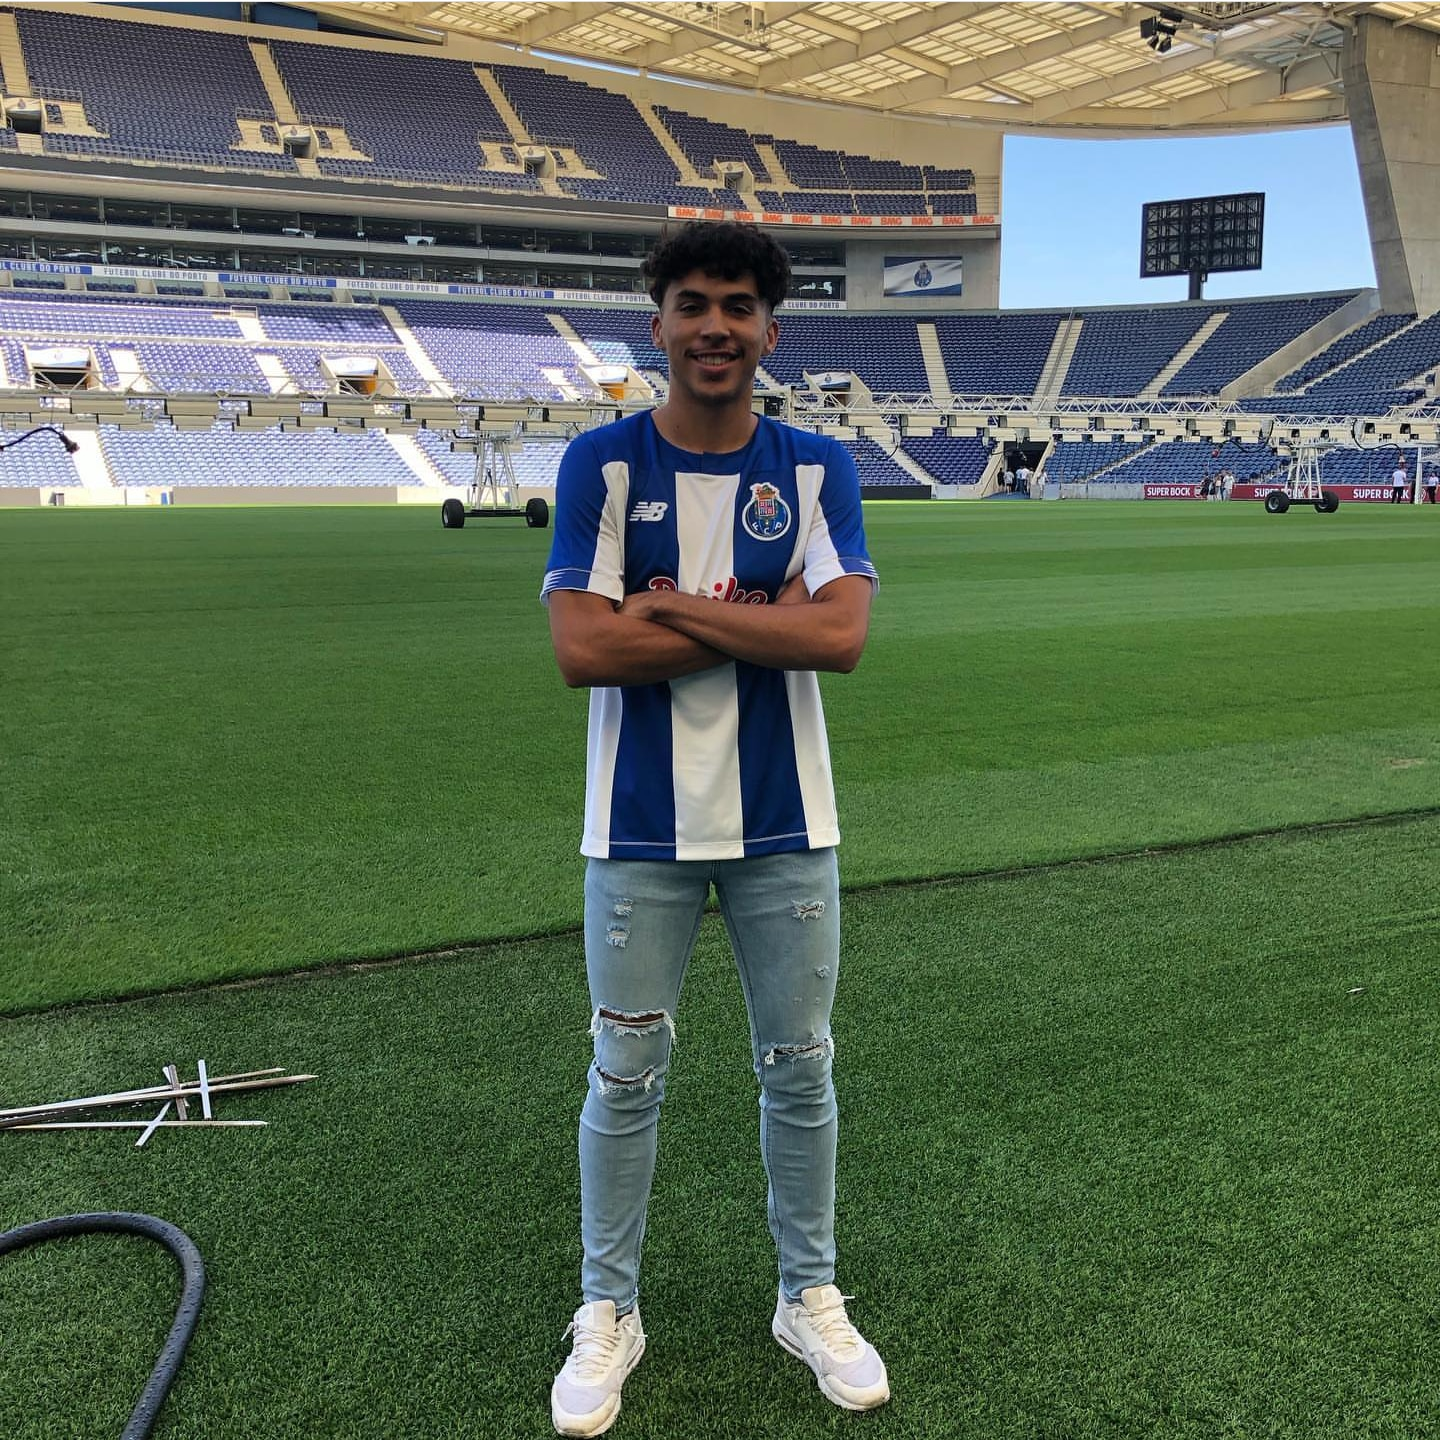 Johan Gomez poses in a FC Porto jersey in the Estádio do Dragão in Porto, Portugal